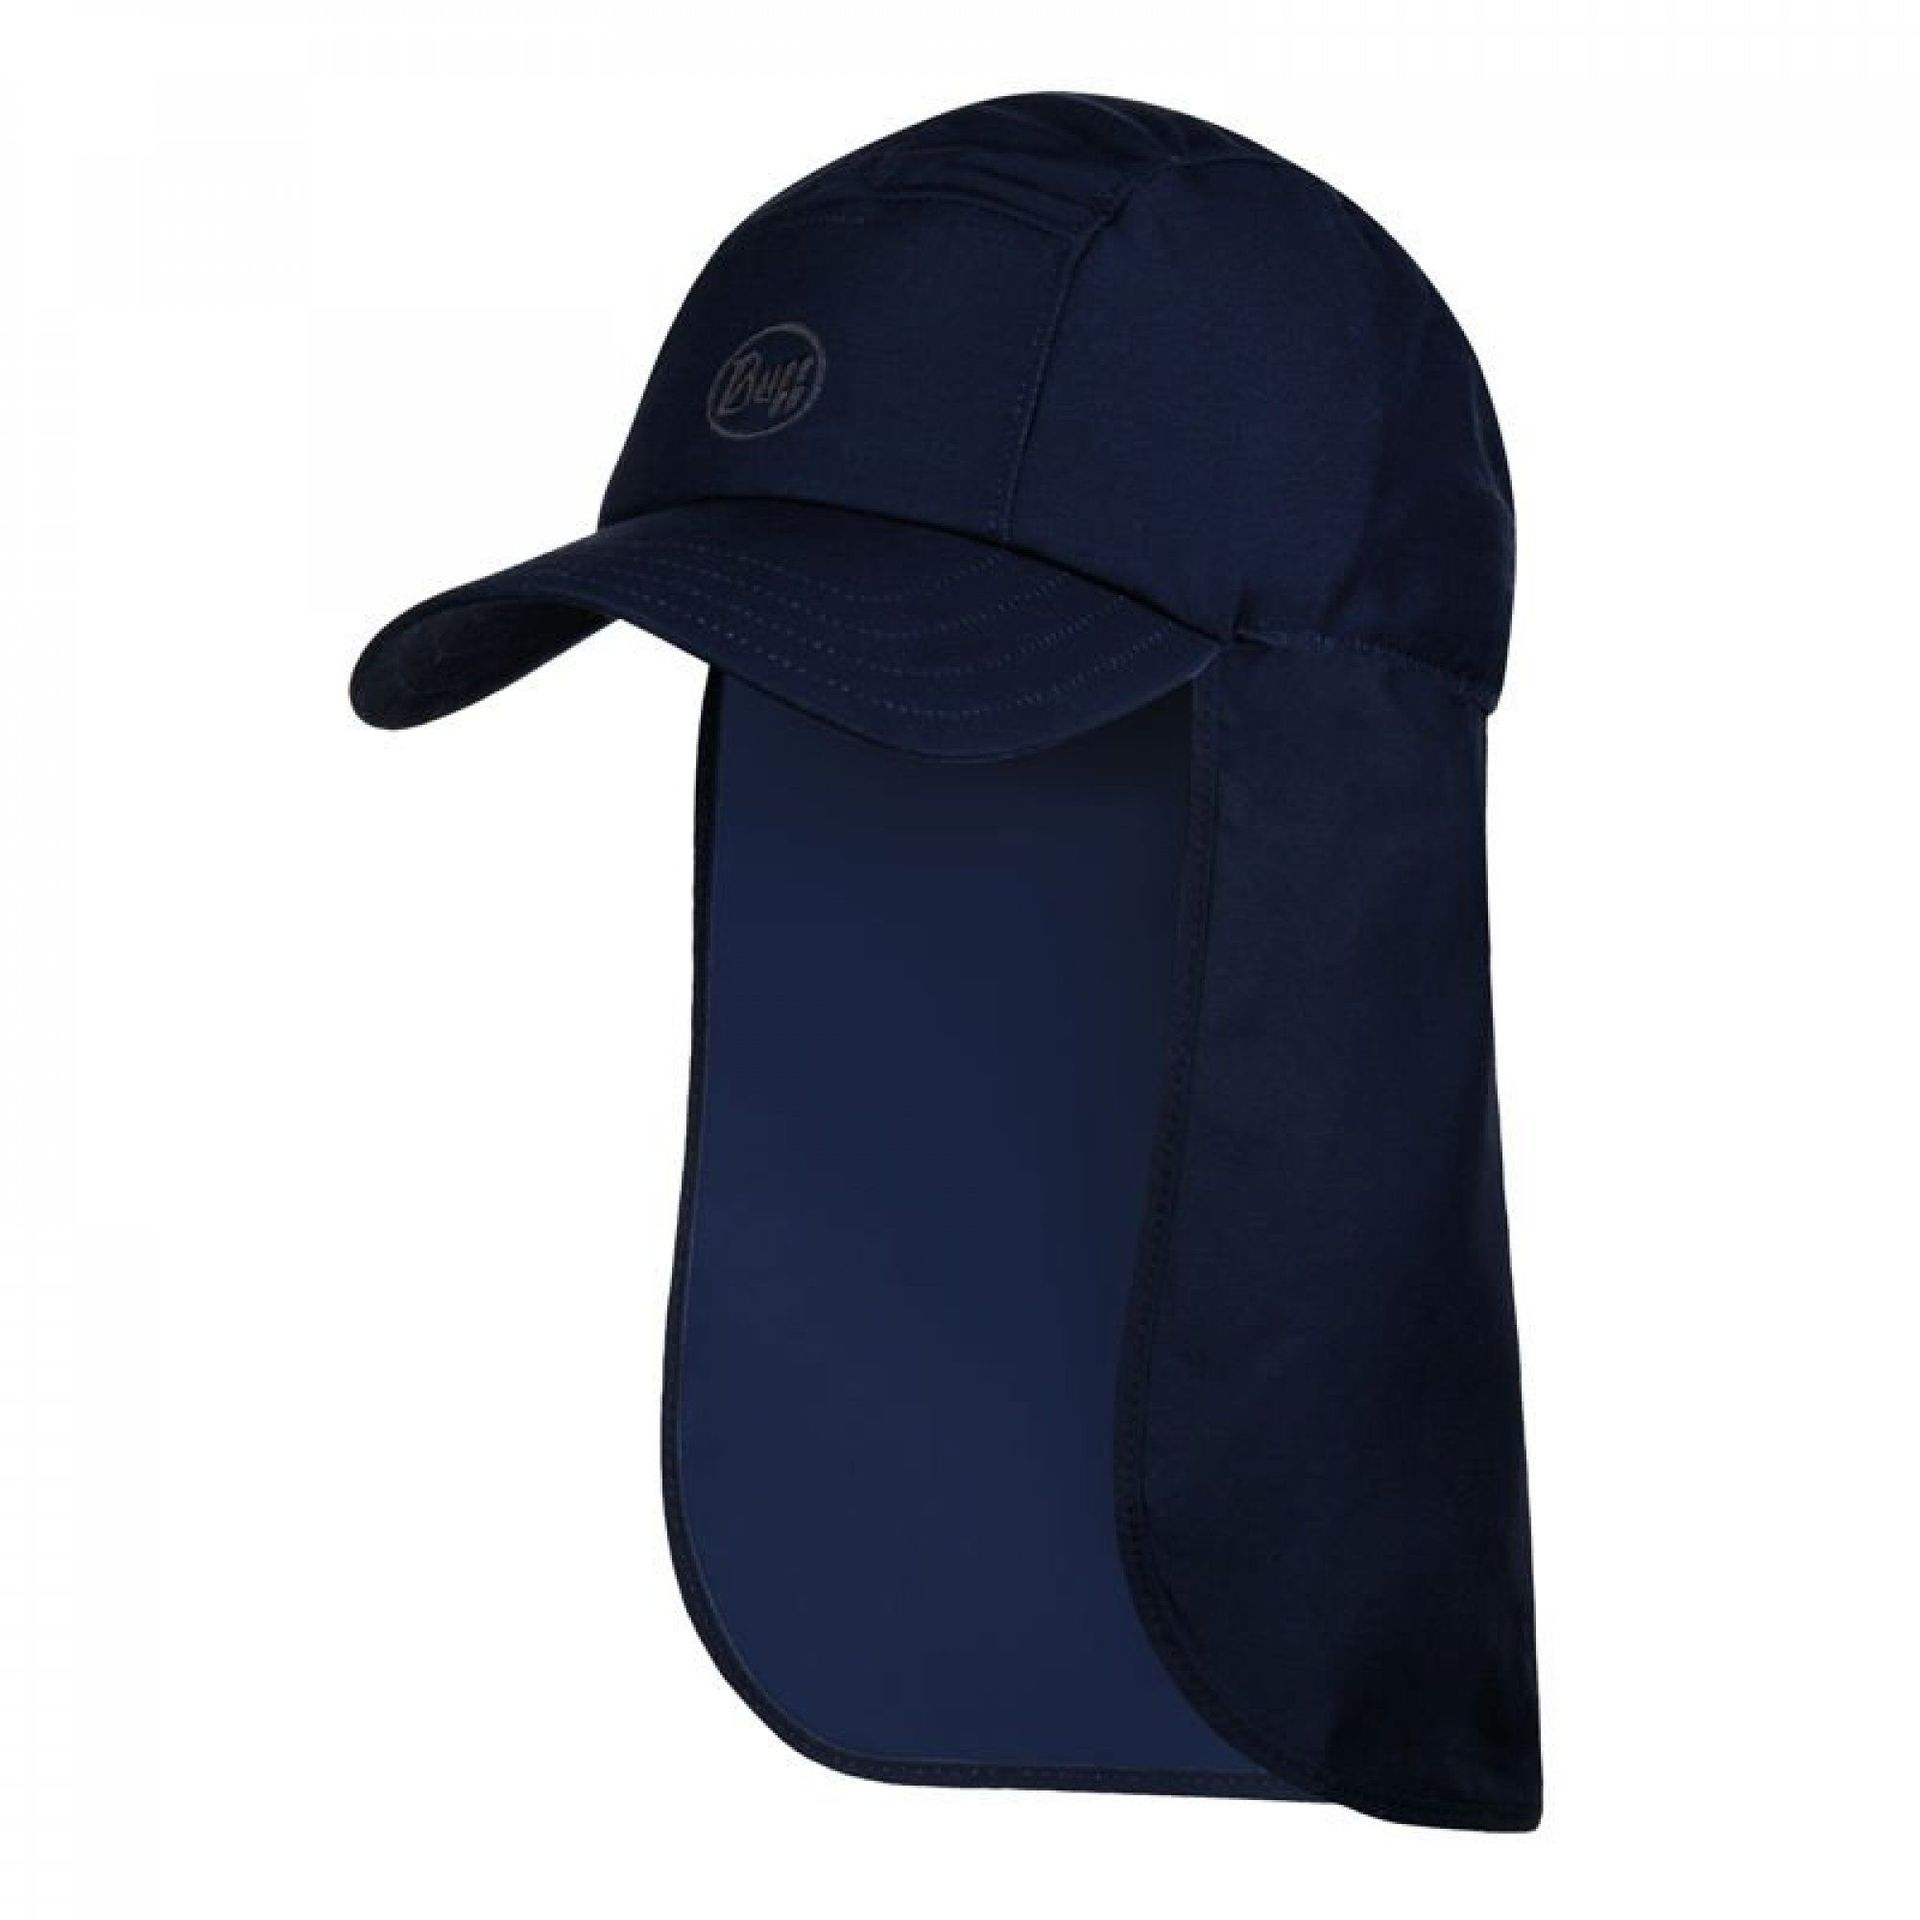 CZAPKA BIMINI CAP SOLID NIGHT BLUE 1